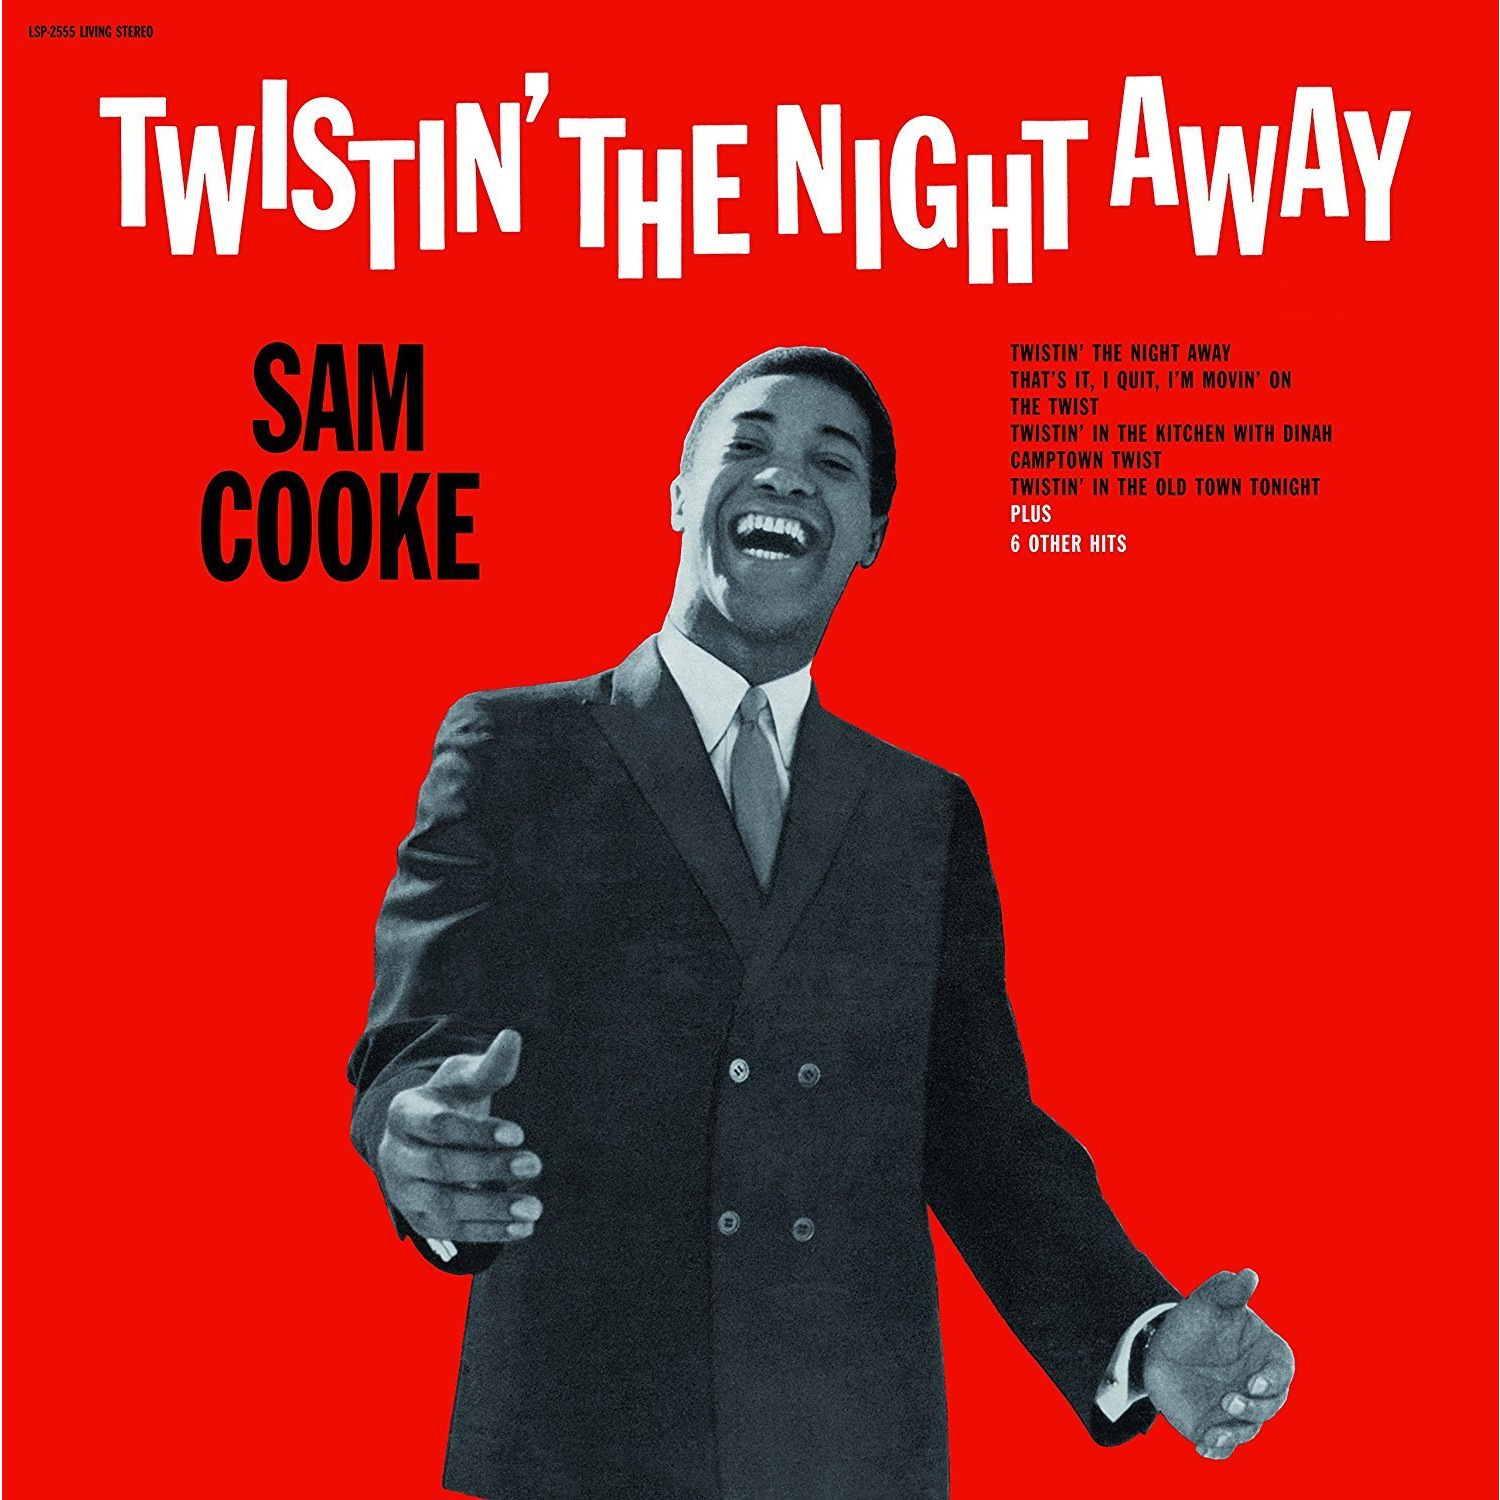 SAM COOKE - TWISTIN' THE NIGHT AWAY, купить виниловую ...